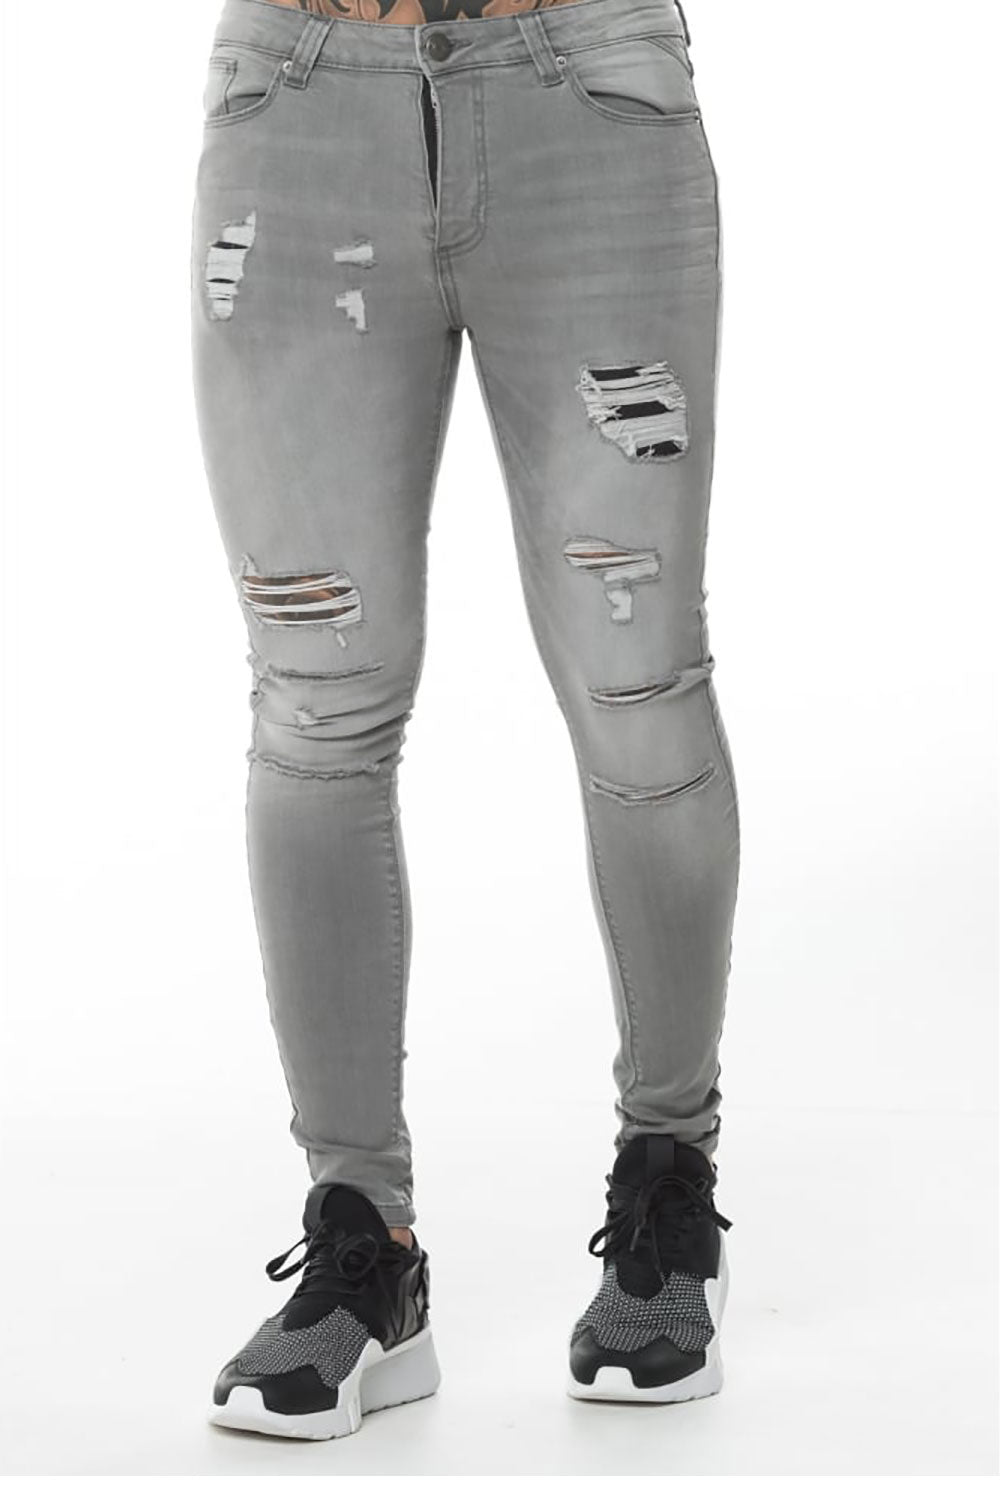 11 Degrees Ripped And Repaired Skinny Jeans - Charcoal Grey